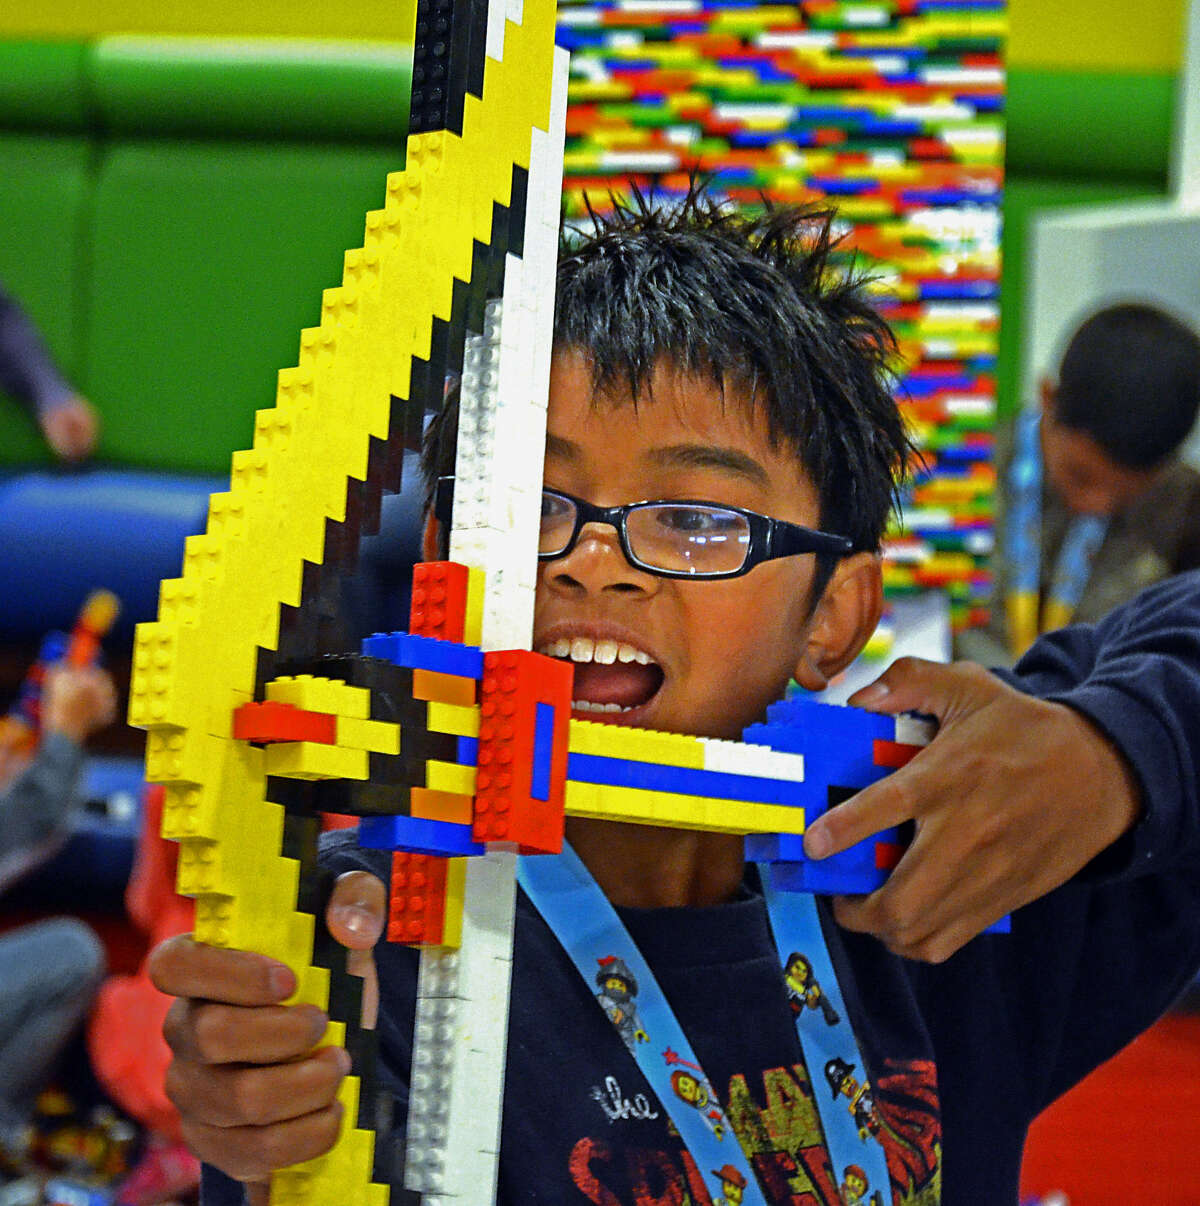 Mason Eugenio, 11, plays with a bow he made from Lego pieces. Legos are the No. 1 toy sought by boys.